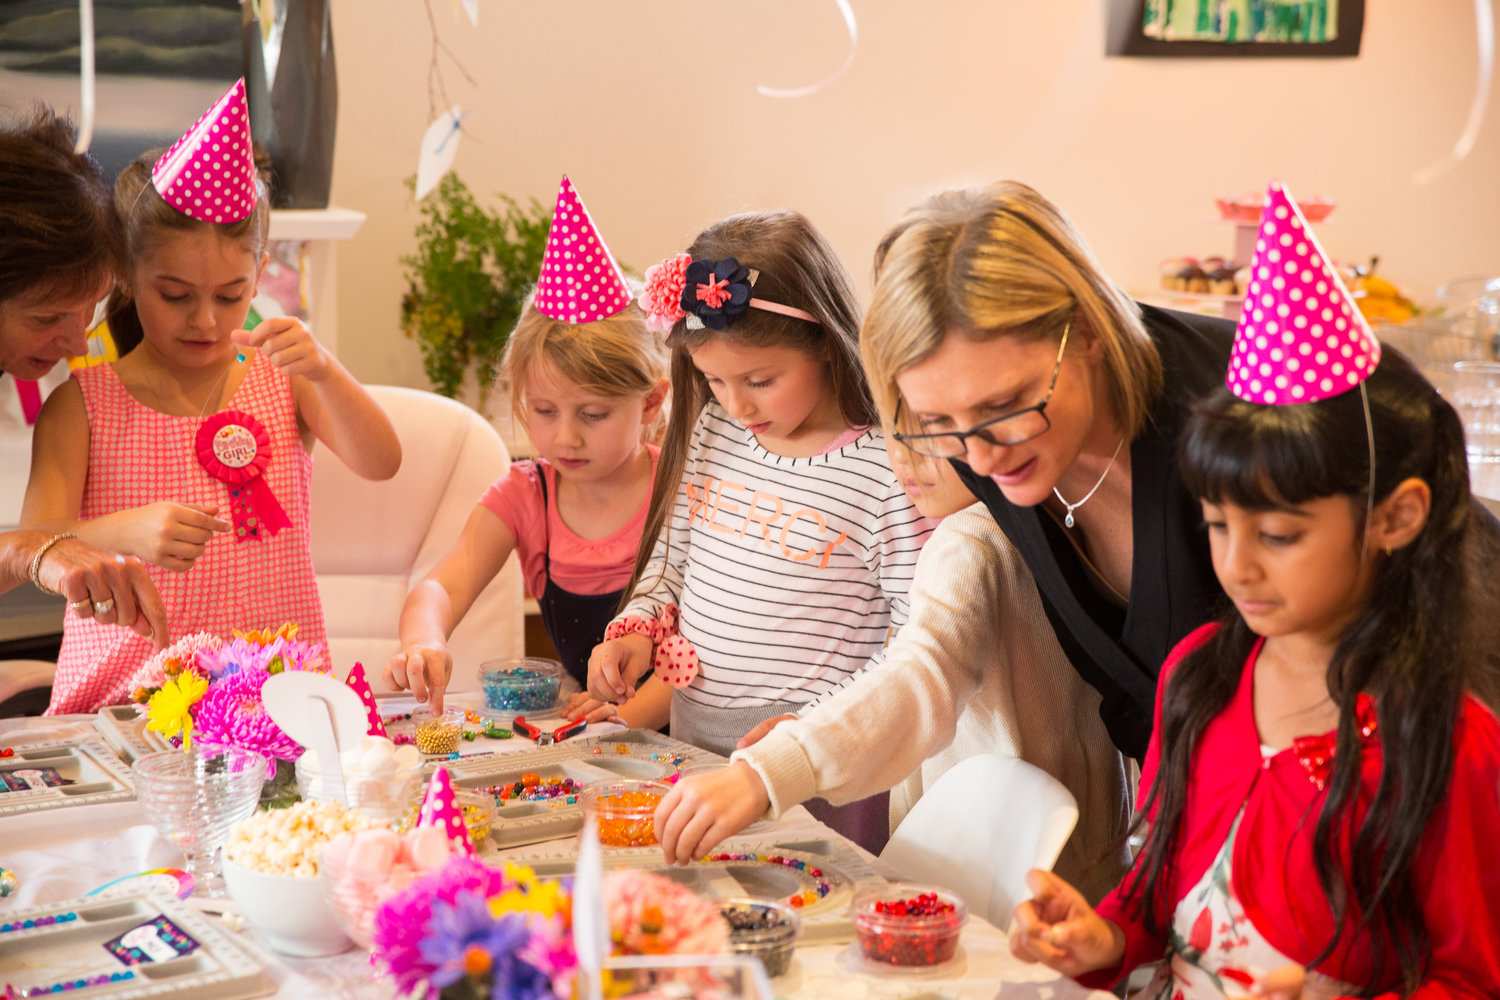 jewellery making parties for 8 11 year olds in melbourne and sydney